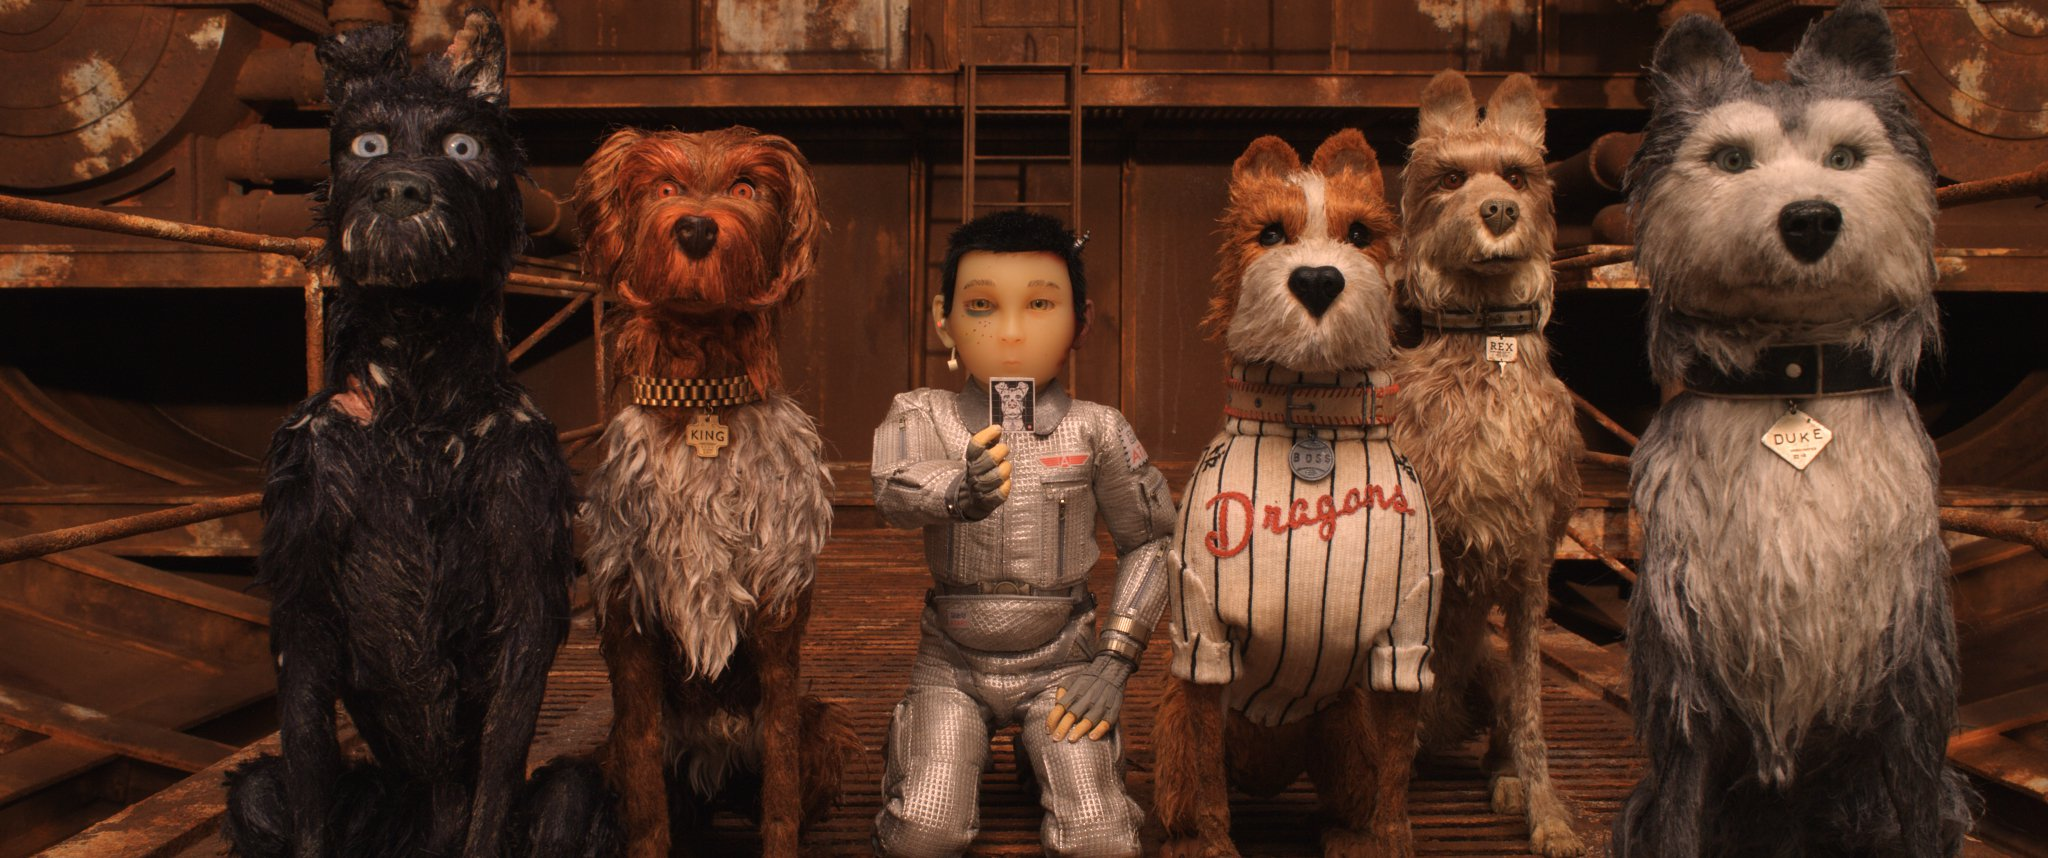 RELEASE DATE: March 23, 2018 TITLE: Isle of Dogs STUDIO: Fox Searchlight Pictures DIRECTOR: Wes Anderson PLOT: Set in Japan, Isle of Dogs follows a boy's odyssey in search of his lost dog. STARRING: Voice of LIEV SCHREIBER as Spots. 20 Mar 2018 Pictured: RELEASE DATE: March 23, 2018 TITLE: Isle of Dogs STUDIO: Fox Searchlight Pictures DIRECTOR: Wes Anderson PLOT: Set in Japan, Isle of Dogs follows a boy's odyssey in search of his lost dog. STARRING: Voice of Jeff Goldblum, Bill Murray, Bob Balaban, Edward Norton, Bryan Cranston, Koyu Rankin. Photo credit: ZUMAPRESS.com / MEGA TheMegaAgency.com +1 888 505 6342